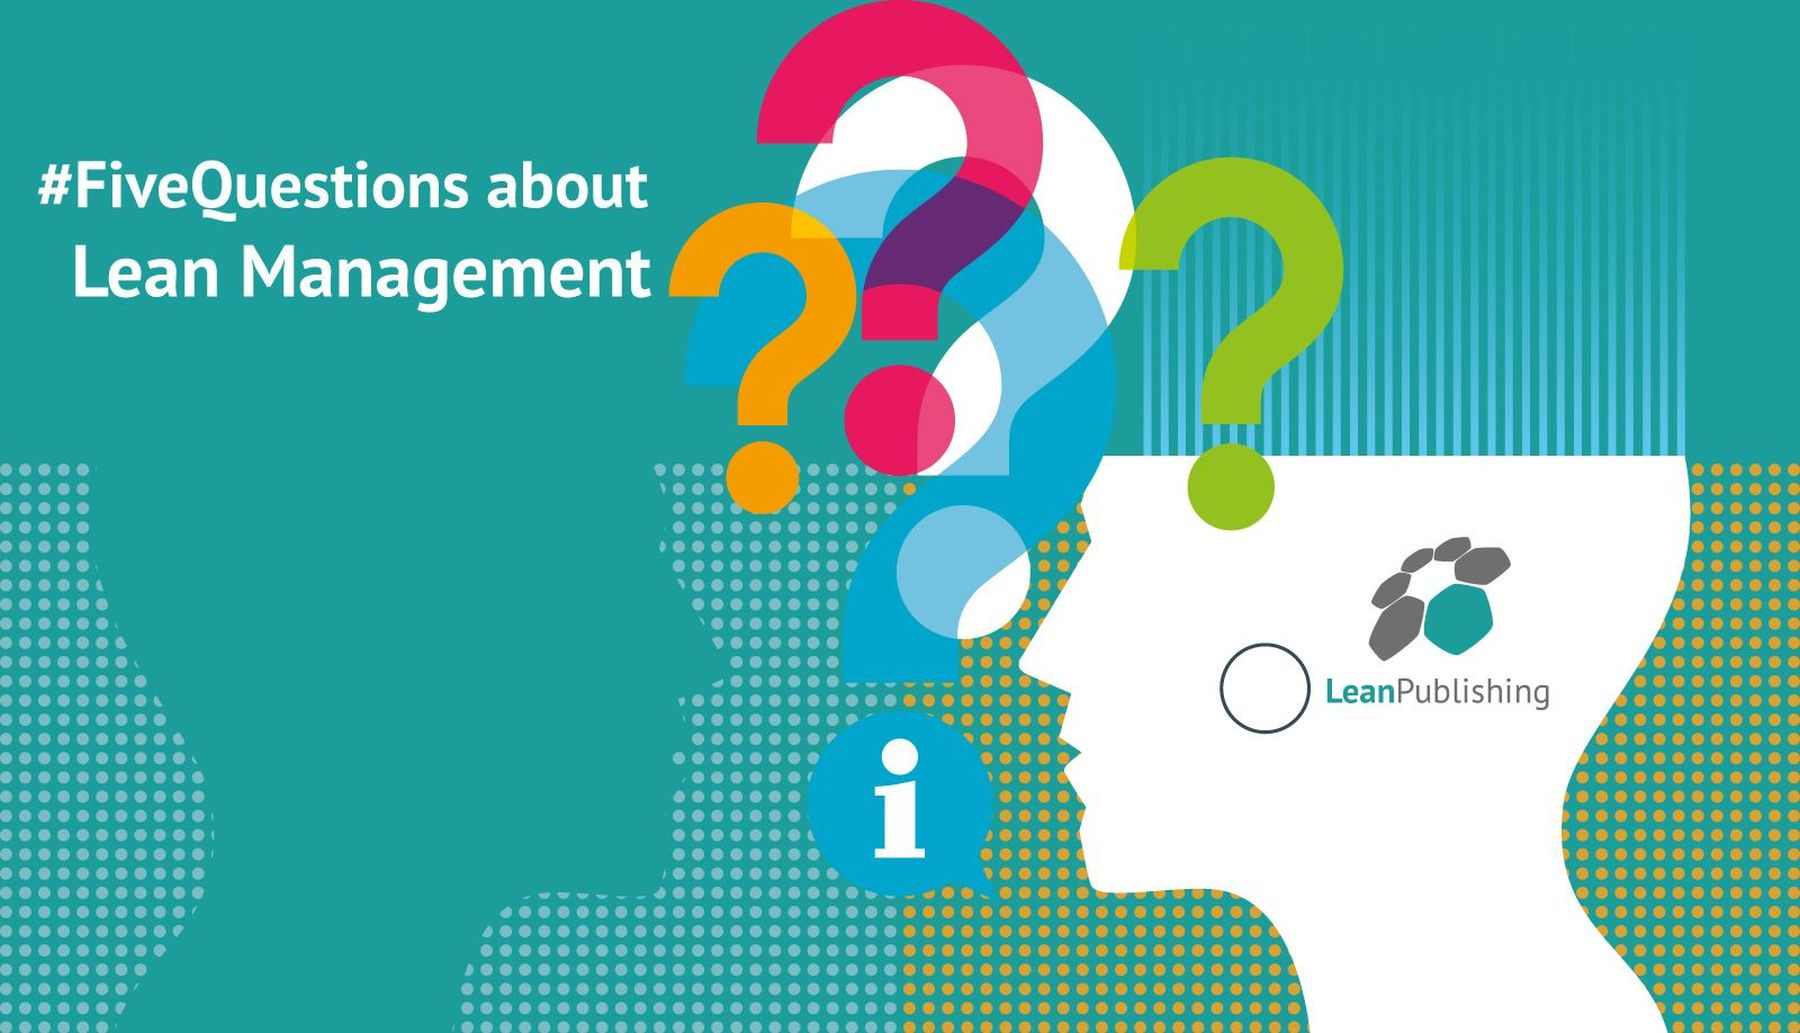 #FiveQuestions about Lean Management